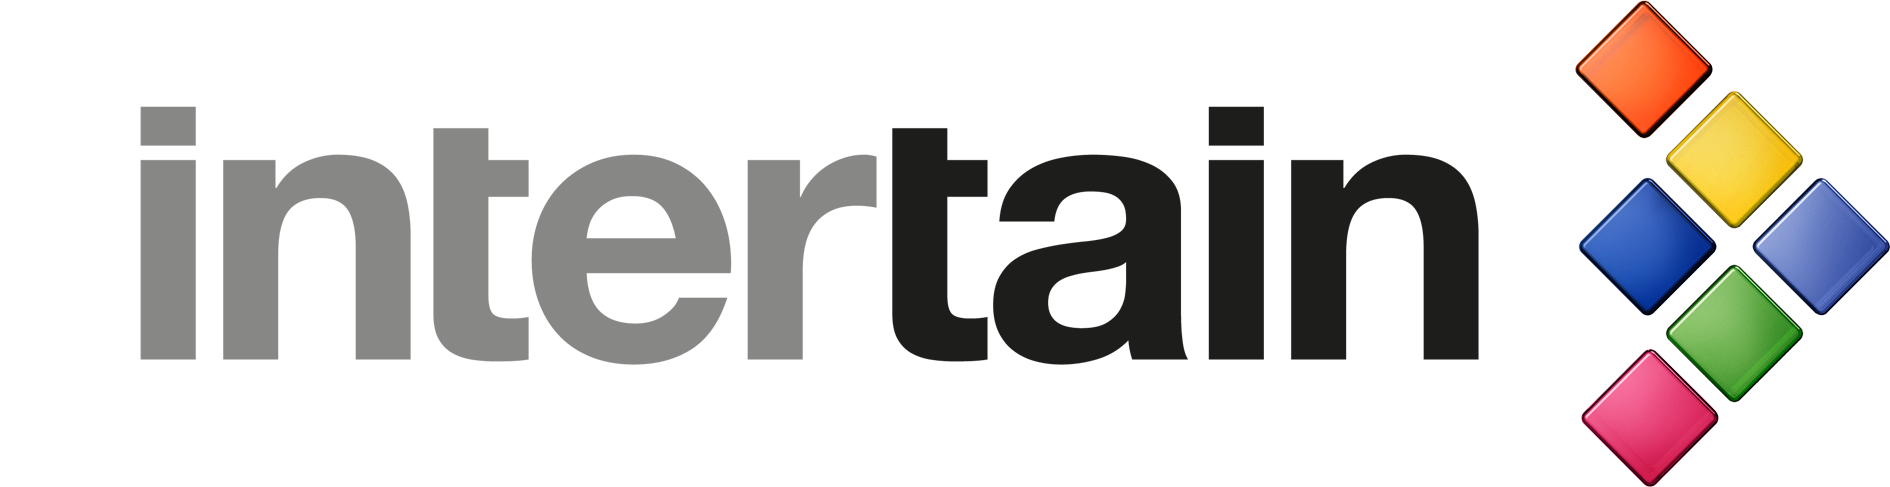 Intertain (logo)